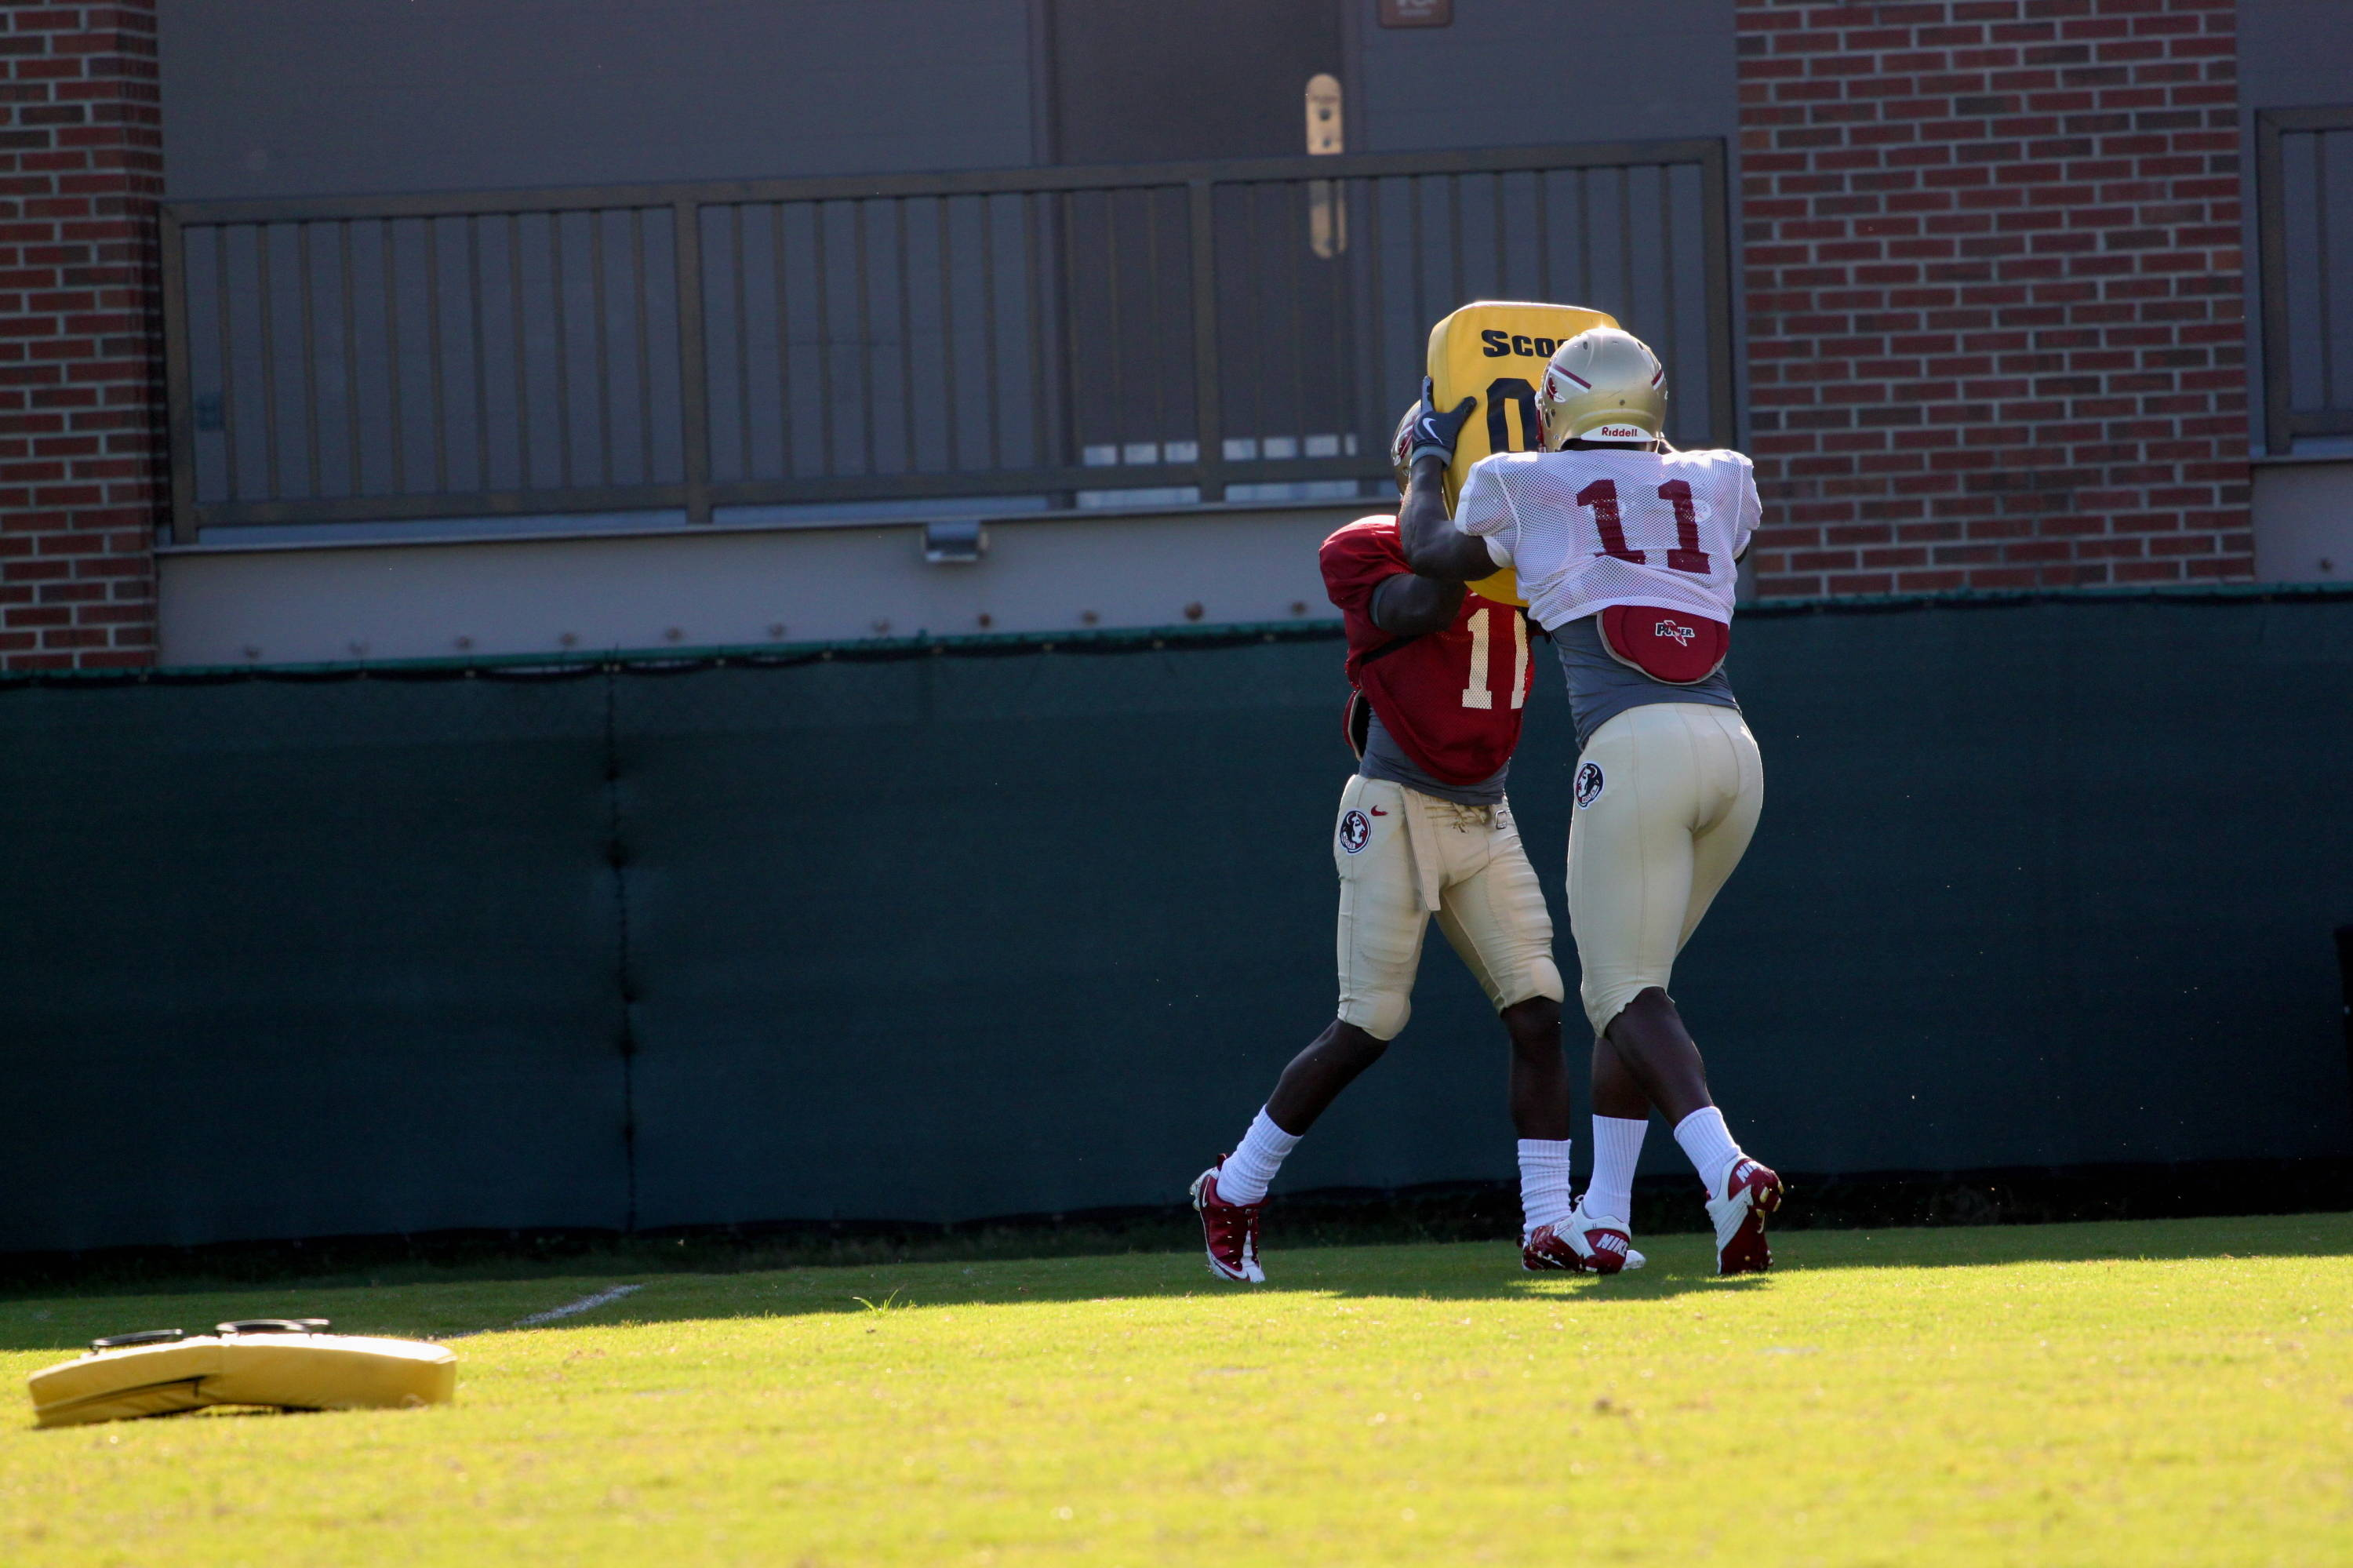 Vince Williams (11) blocks downfield during a punt drill